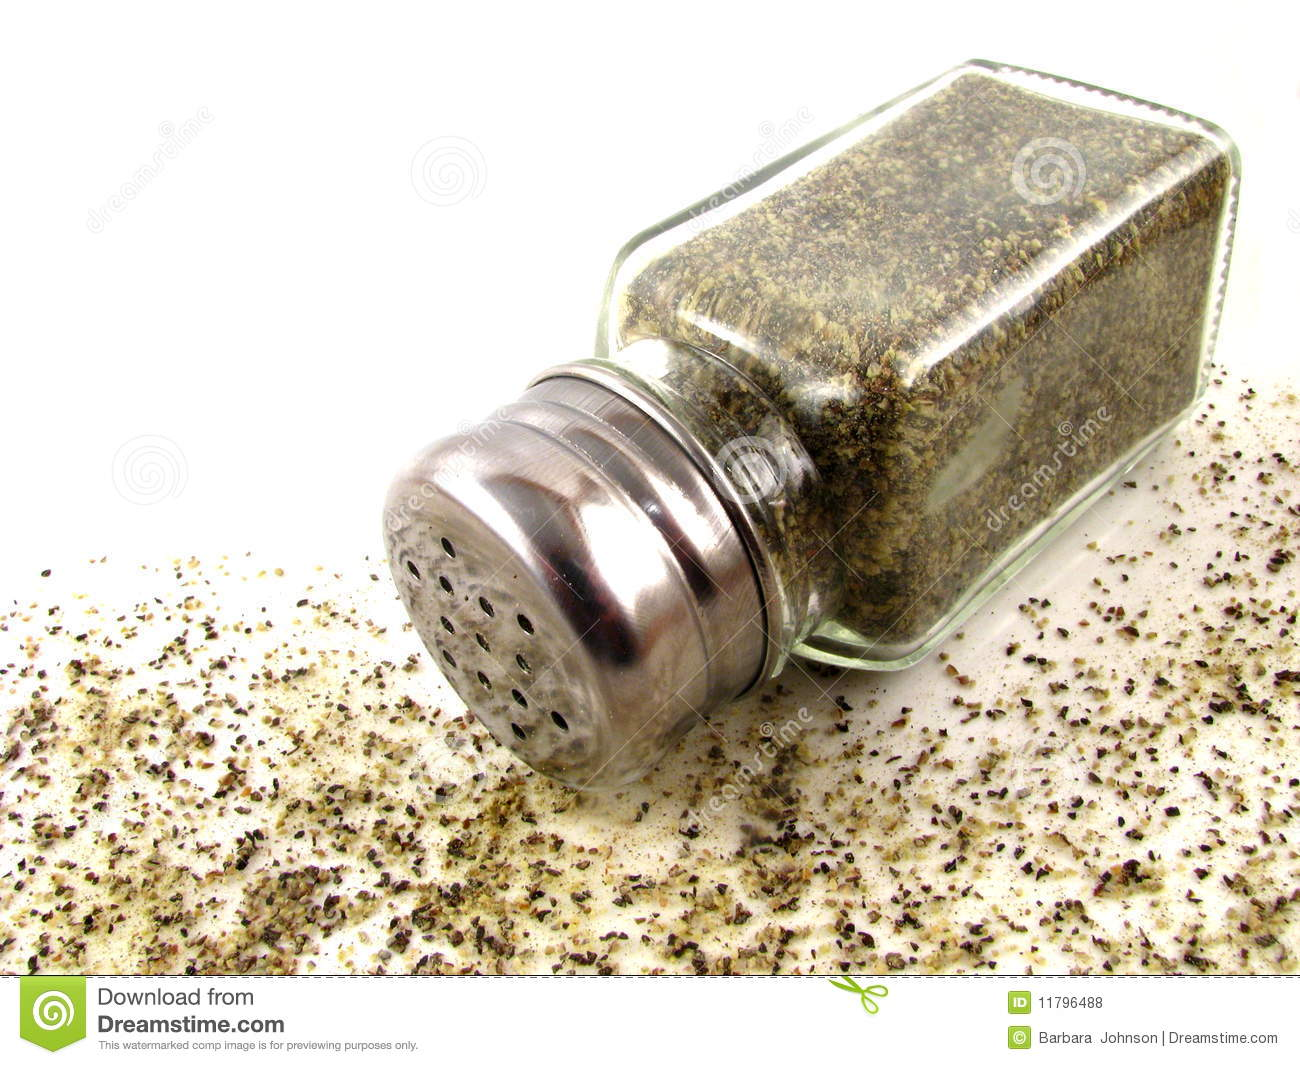 pepper shaker royalty free stock photos image 11796488 notebook clipart images notebook clip art image